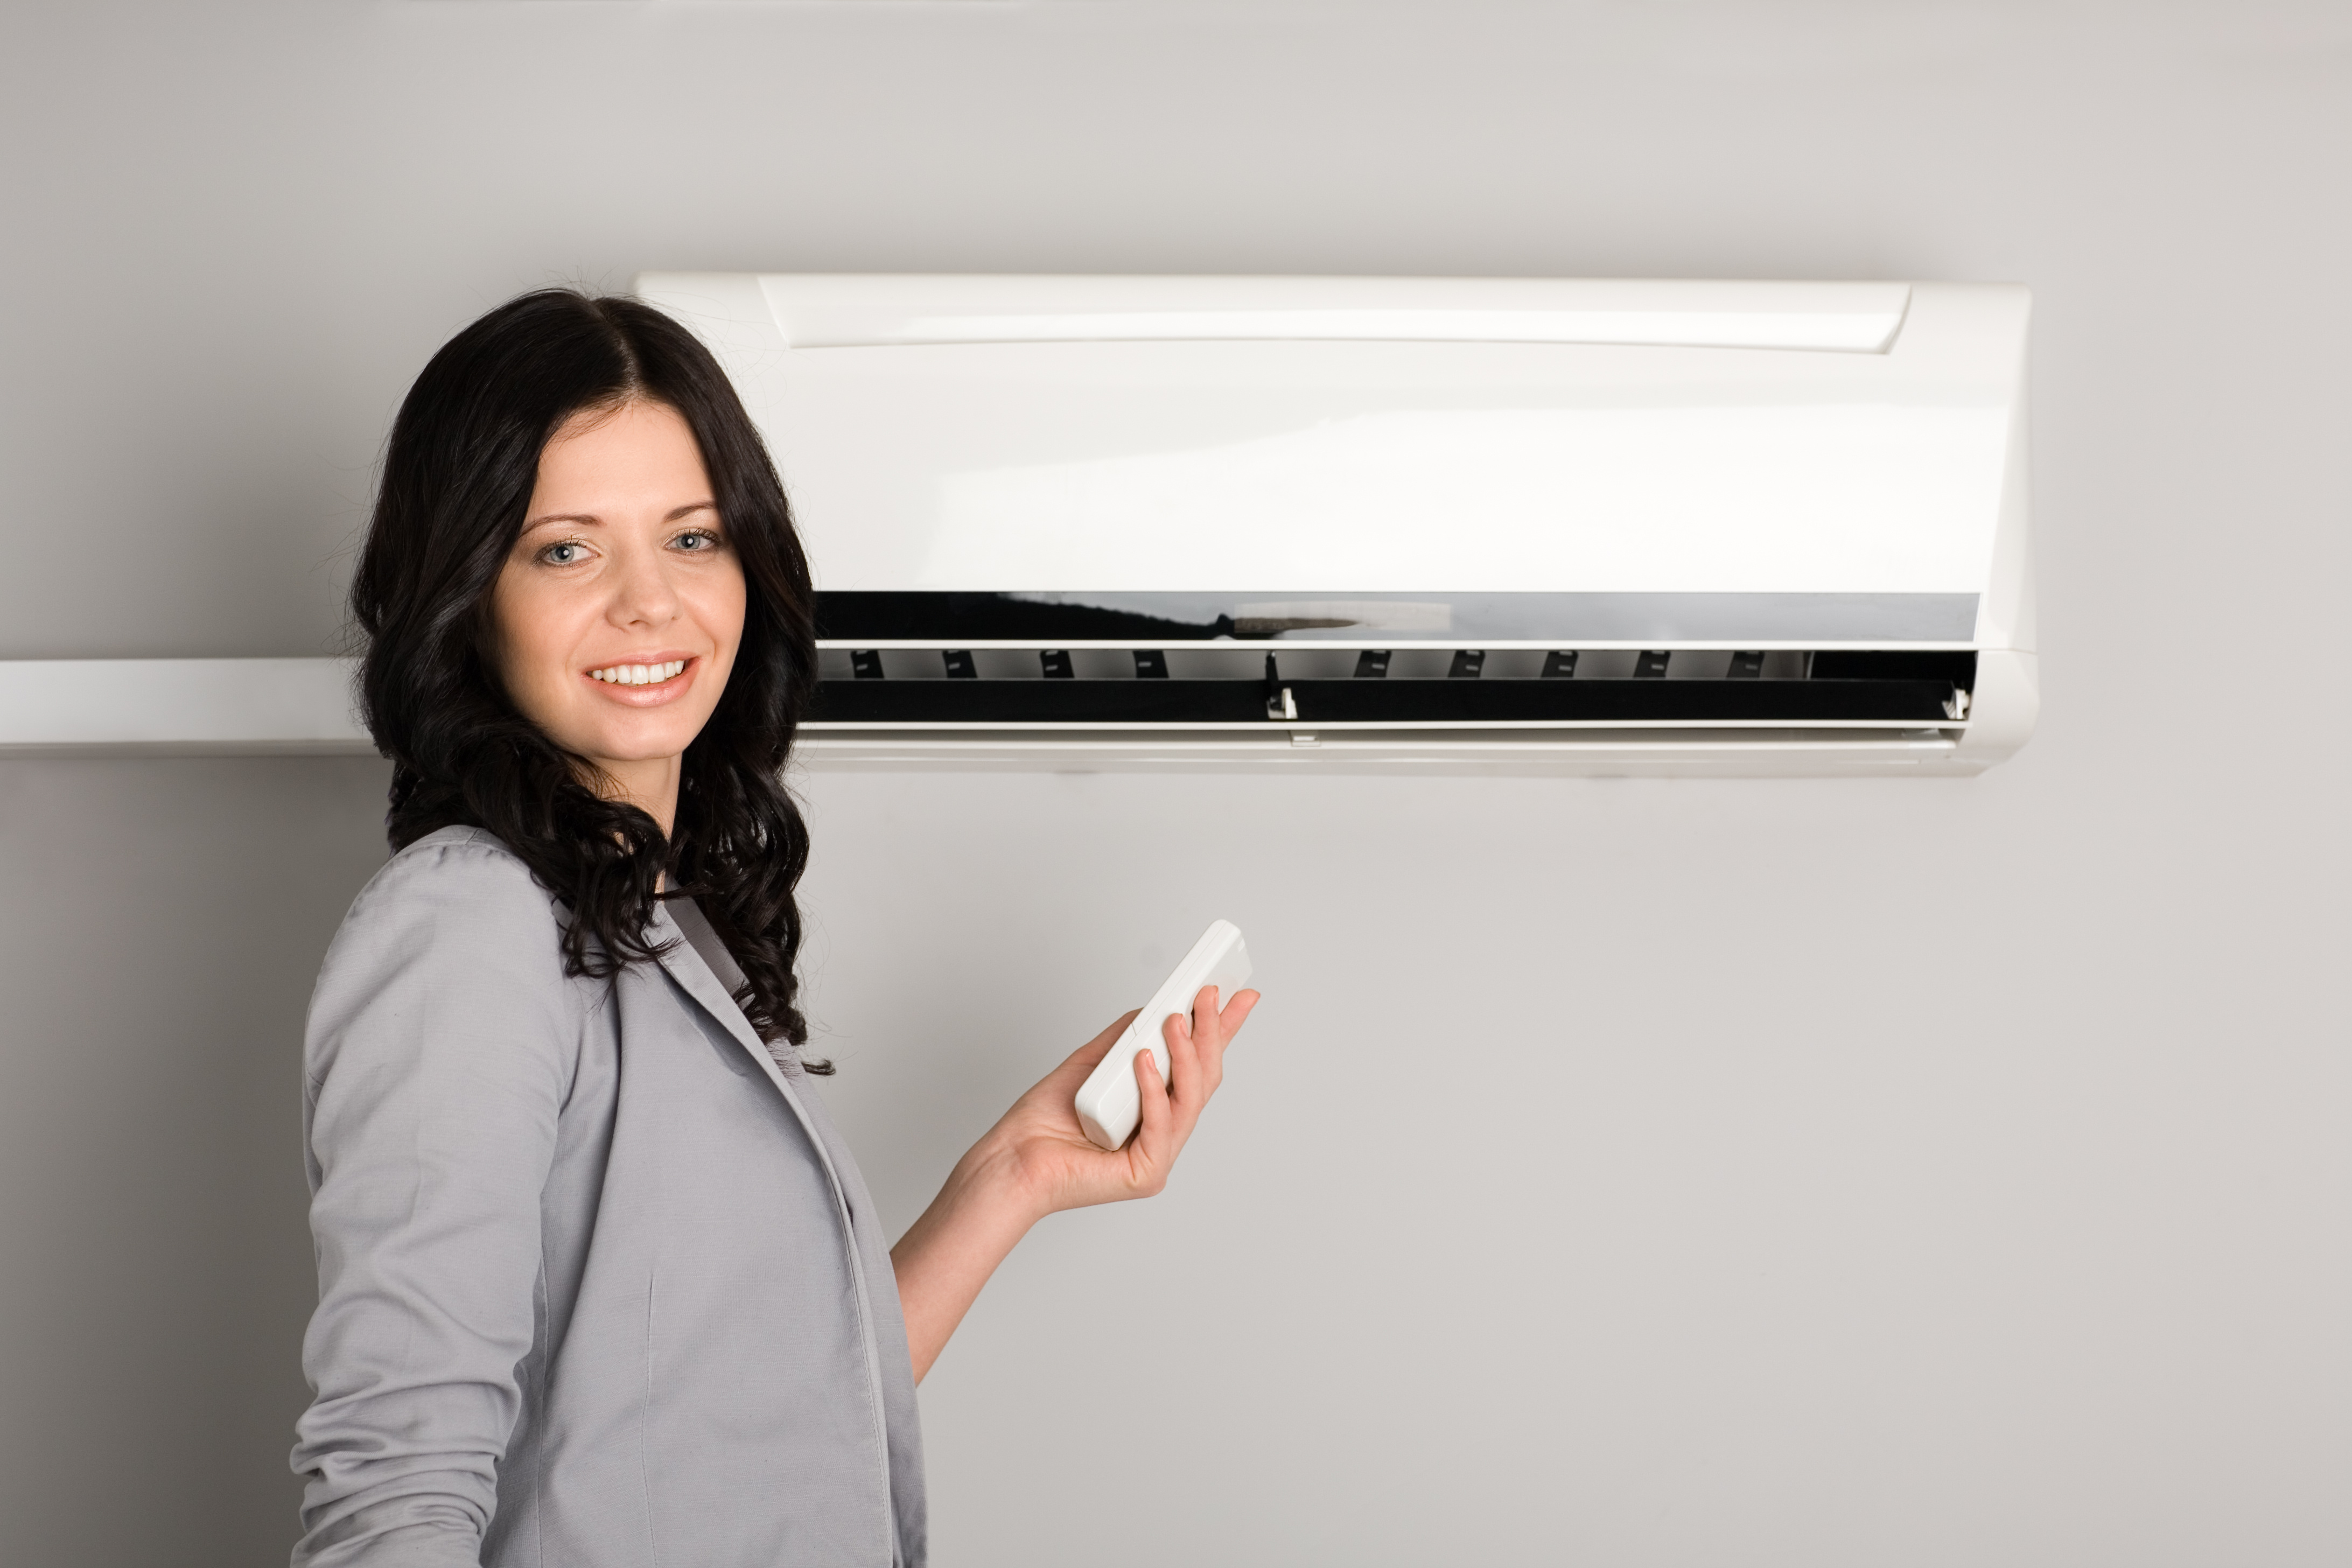 Woman with air conditioner remote